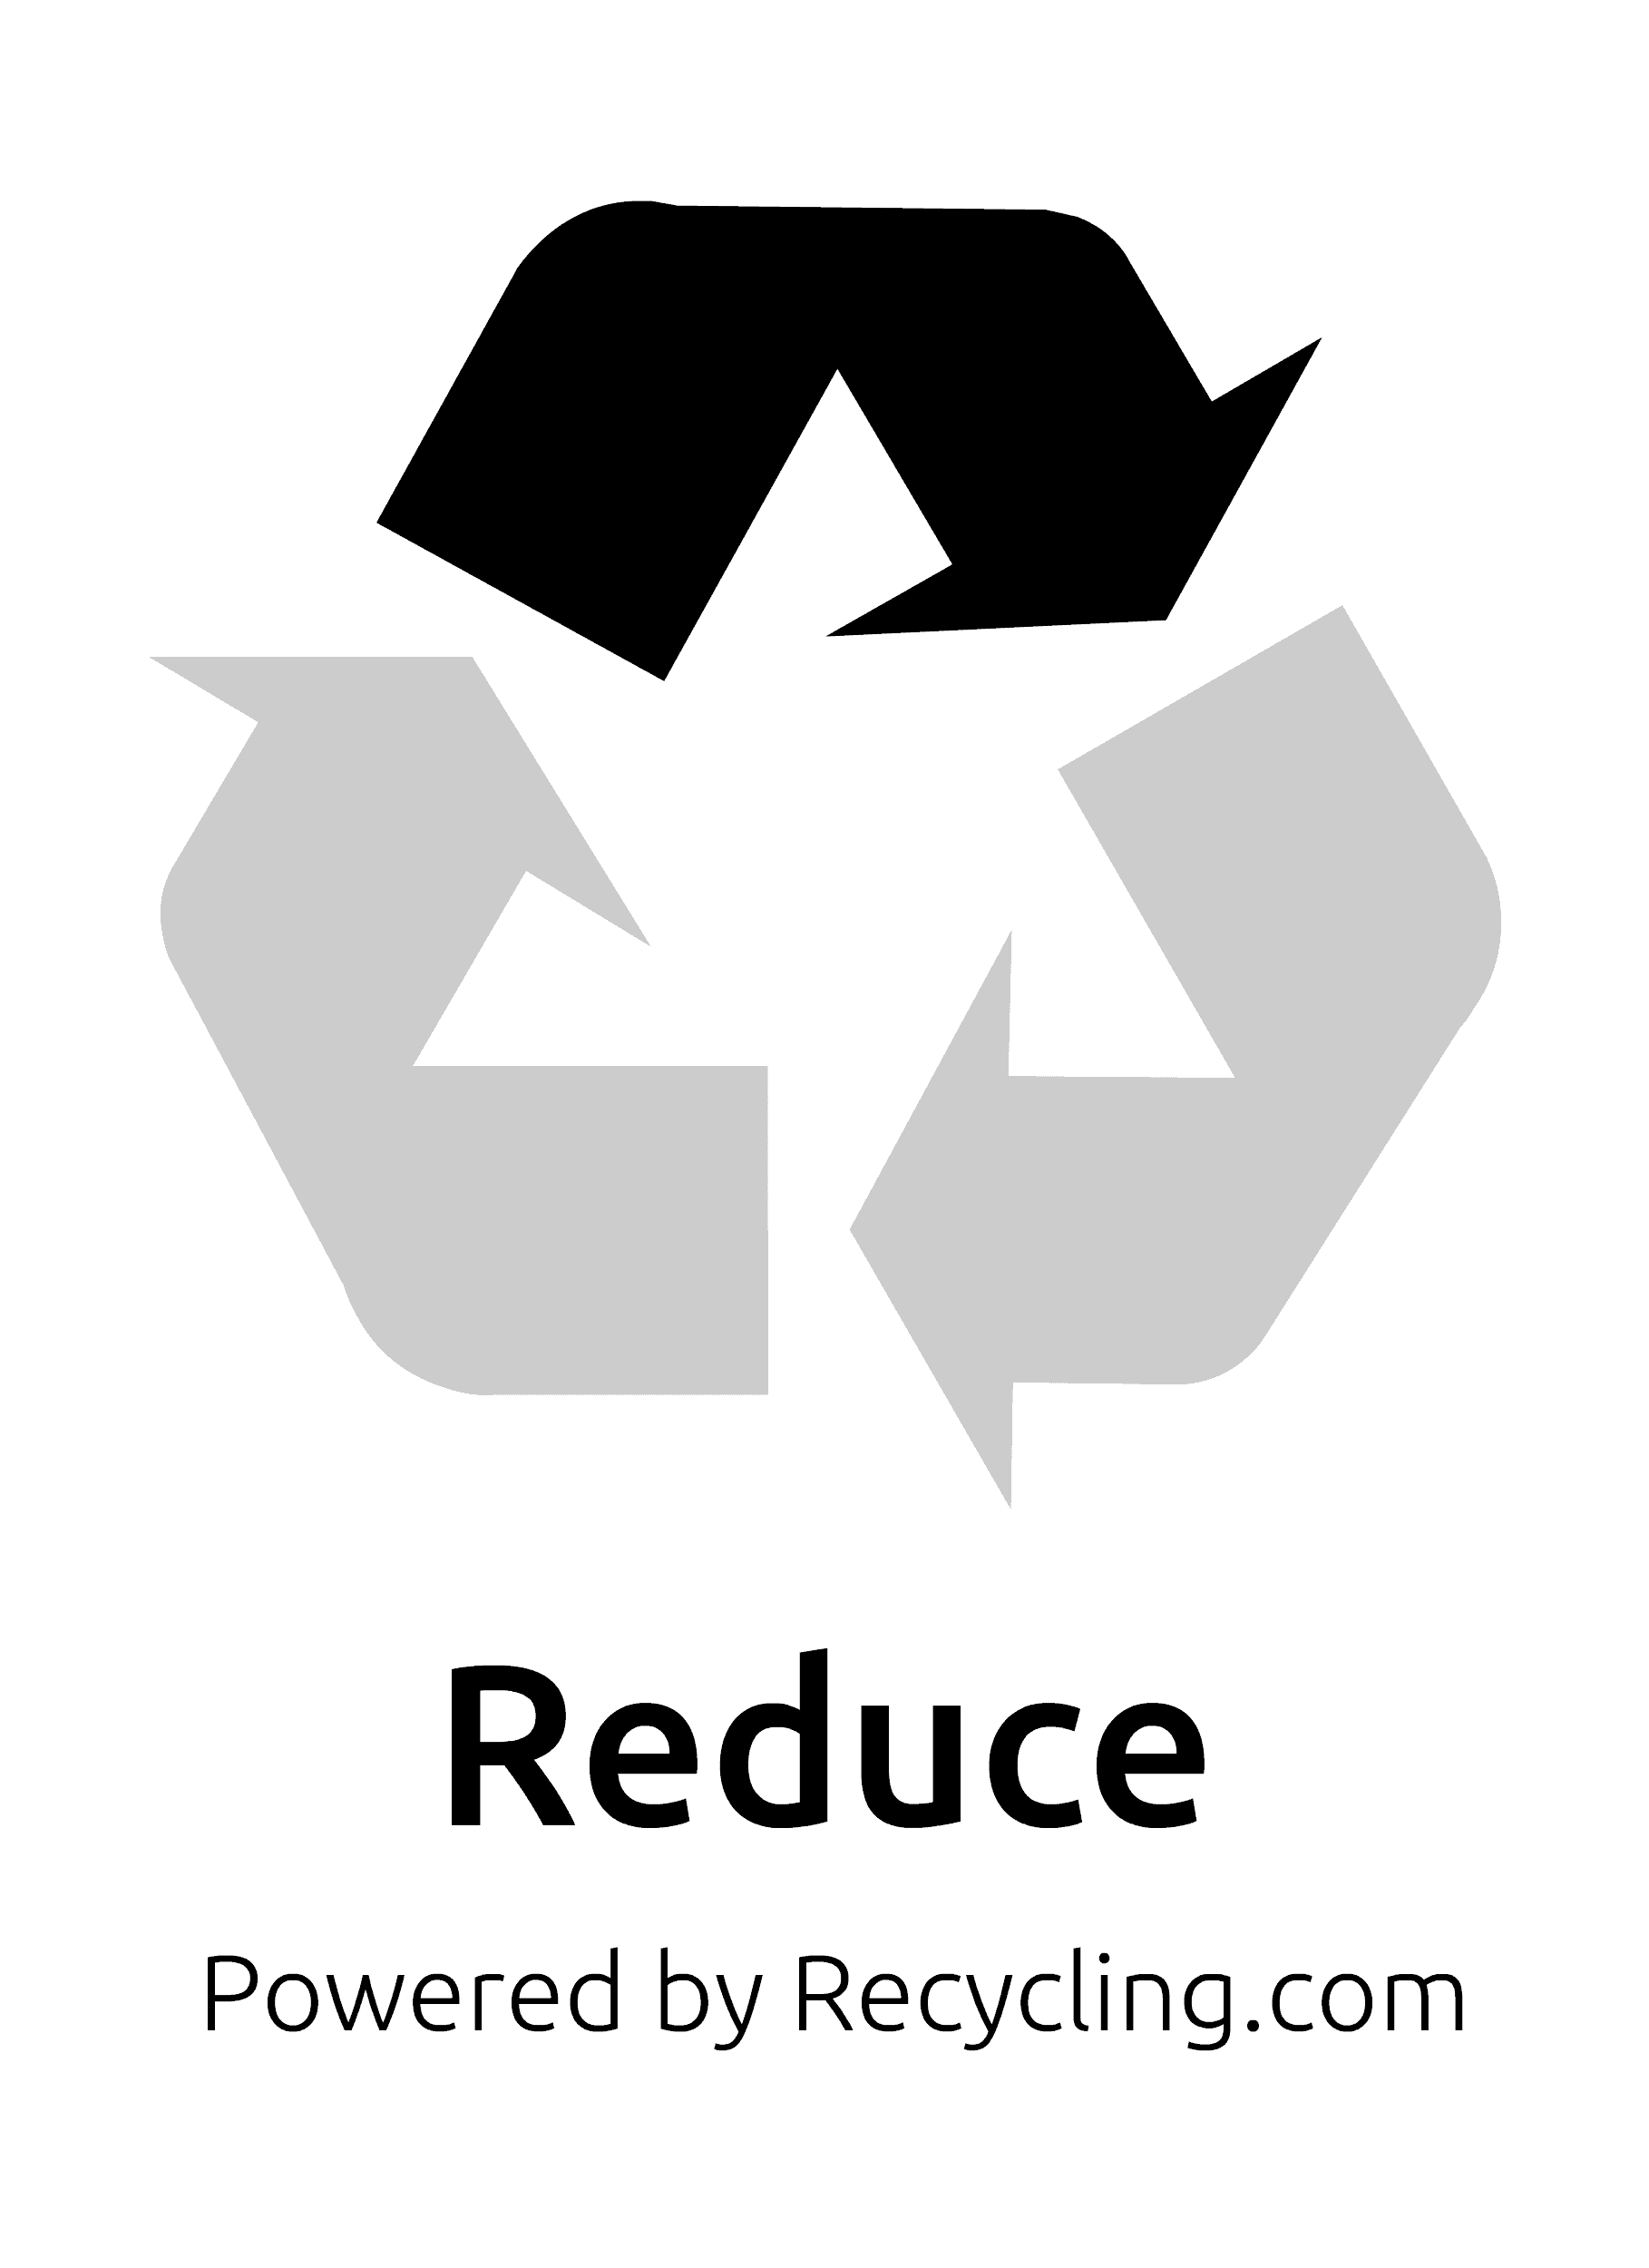 The Recycling Trilogy Reduce Reuse Recycle Download